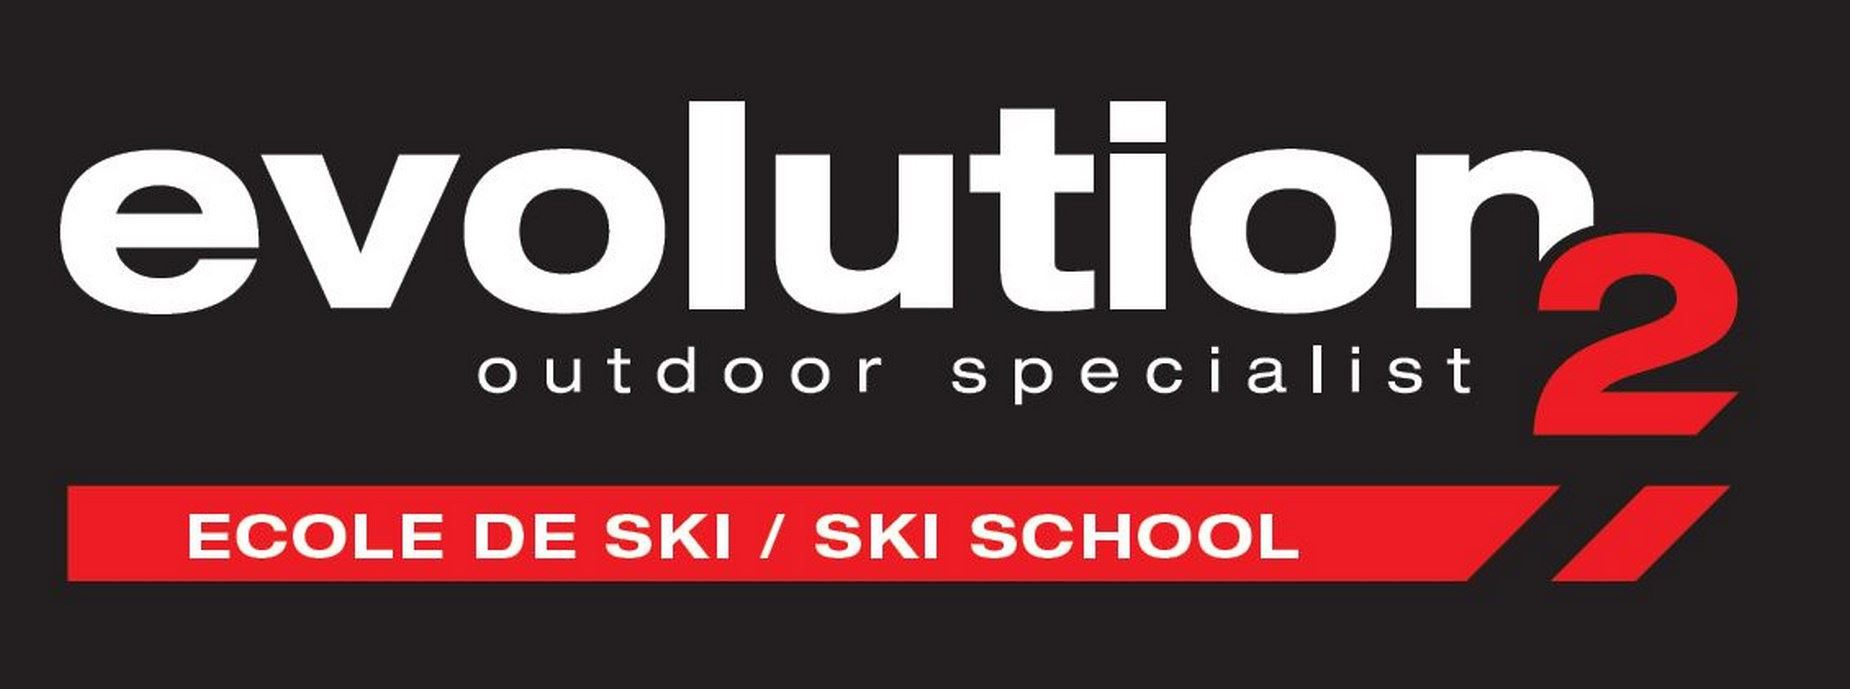 SKI SCHOOL EVOLUTION 2 - SKI LESSONS